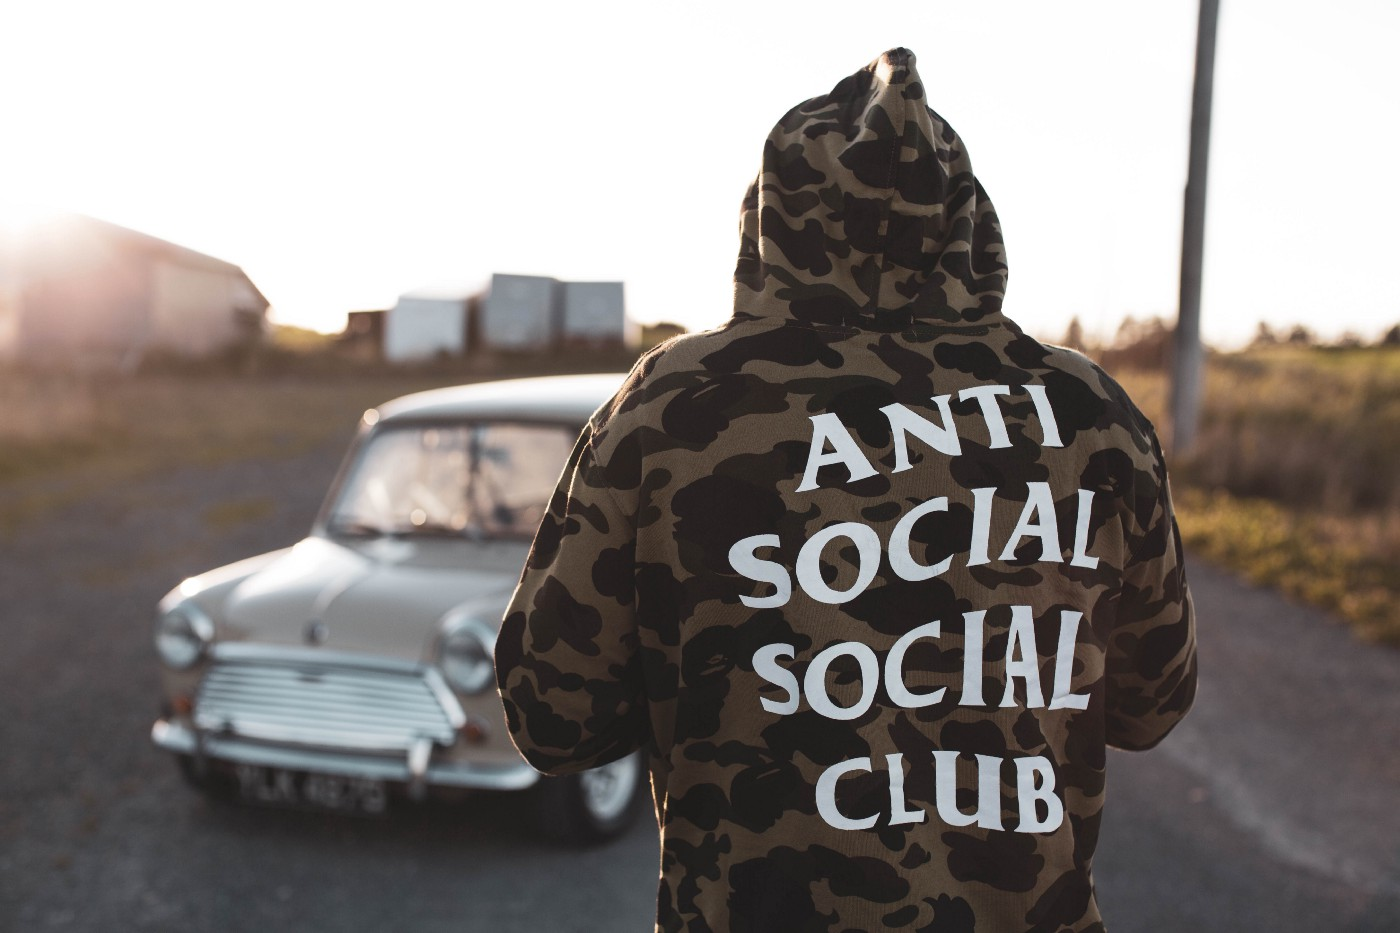 Man wearing hoodie that says anti social social club, standing in front of a car